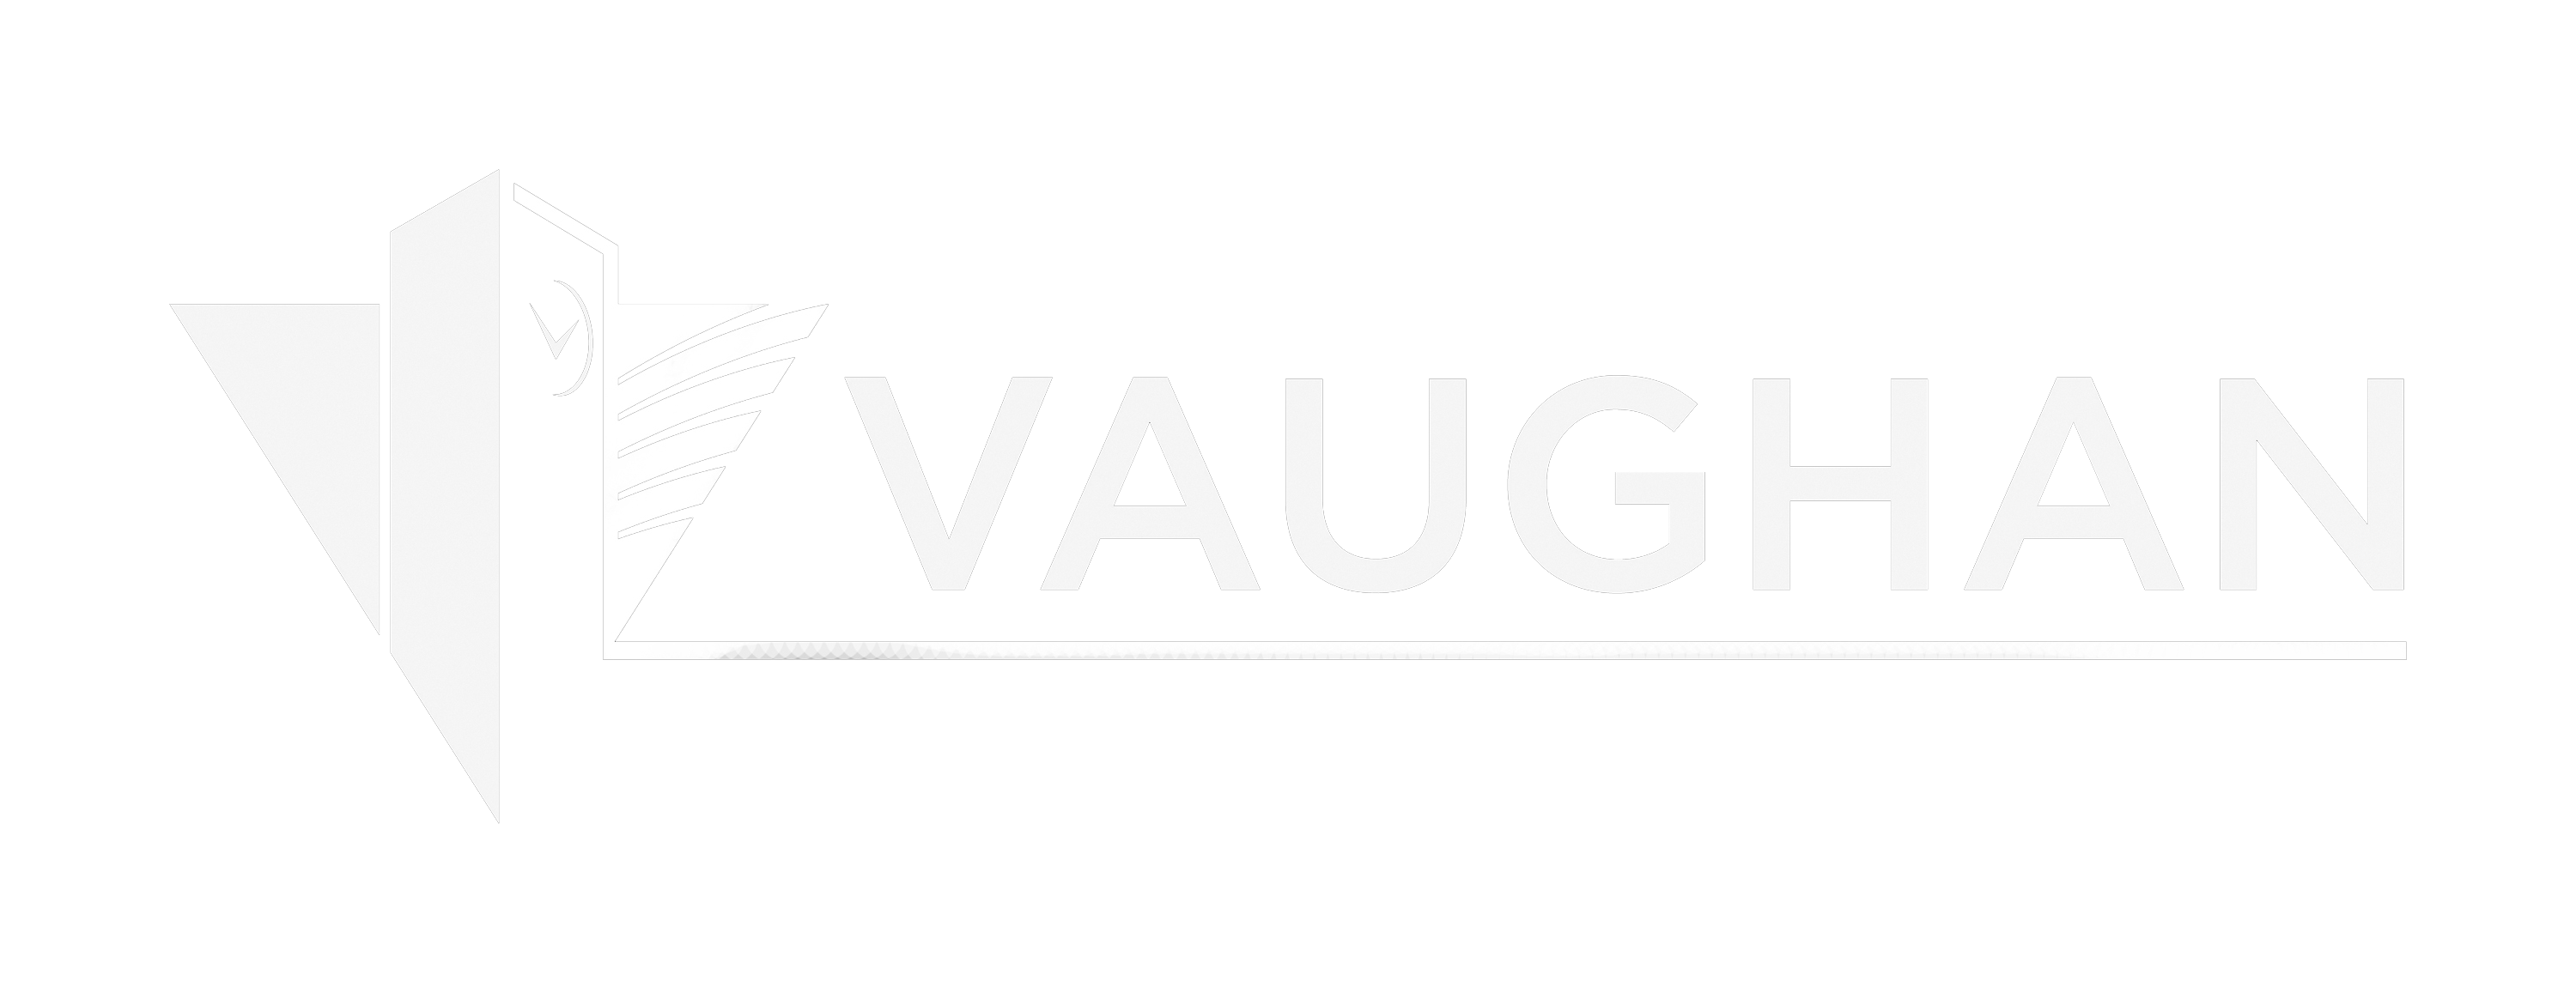 Vaughan city logo